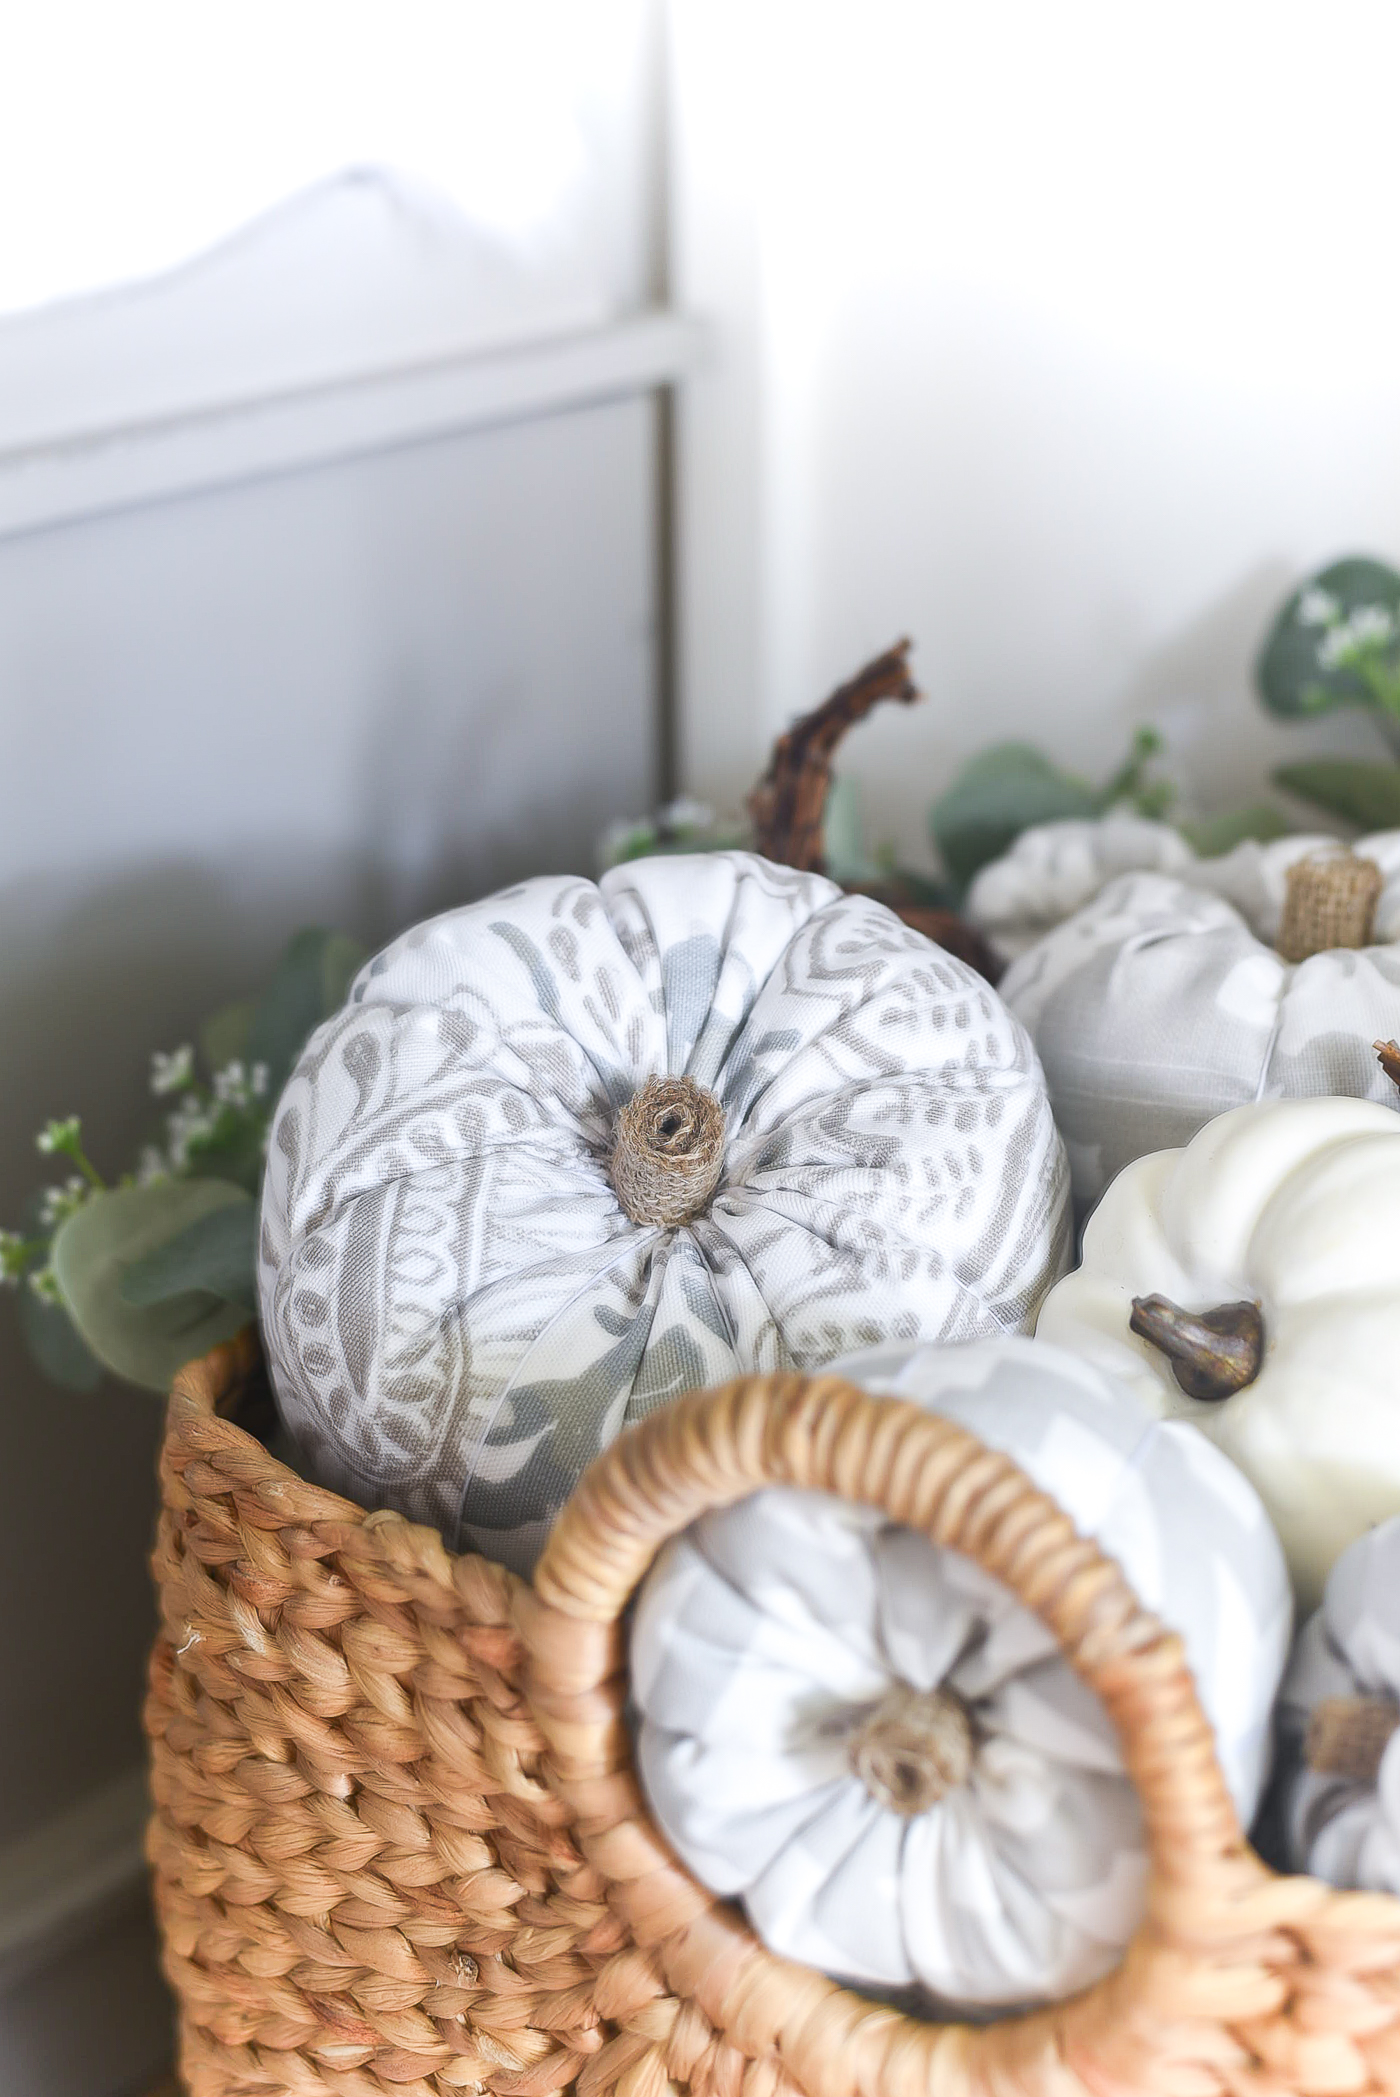 Fabric Pumpkins -Gray White Fabric Stuffed Pumpkins - DIY Fabric Pumpkins - How To Make Fabric Stuffed Pumpkins